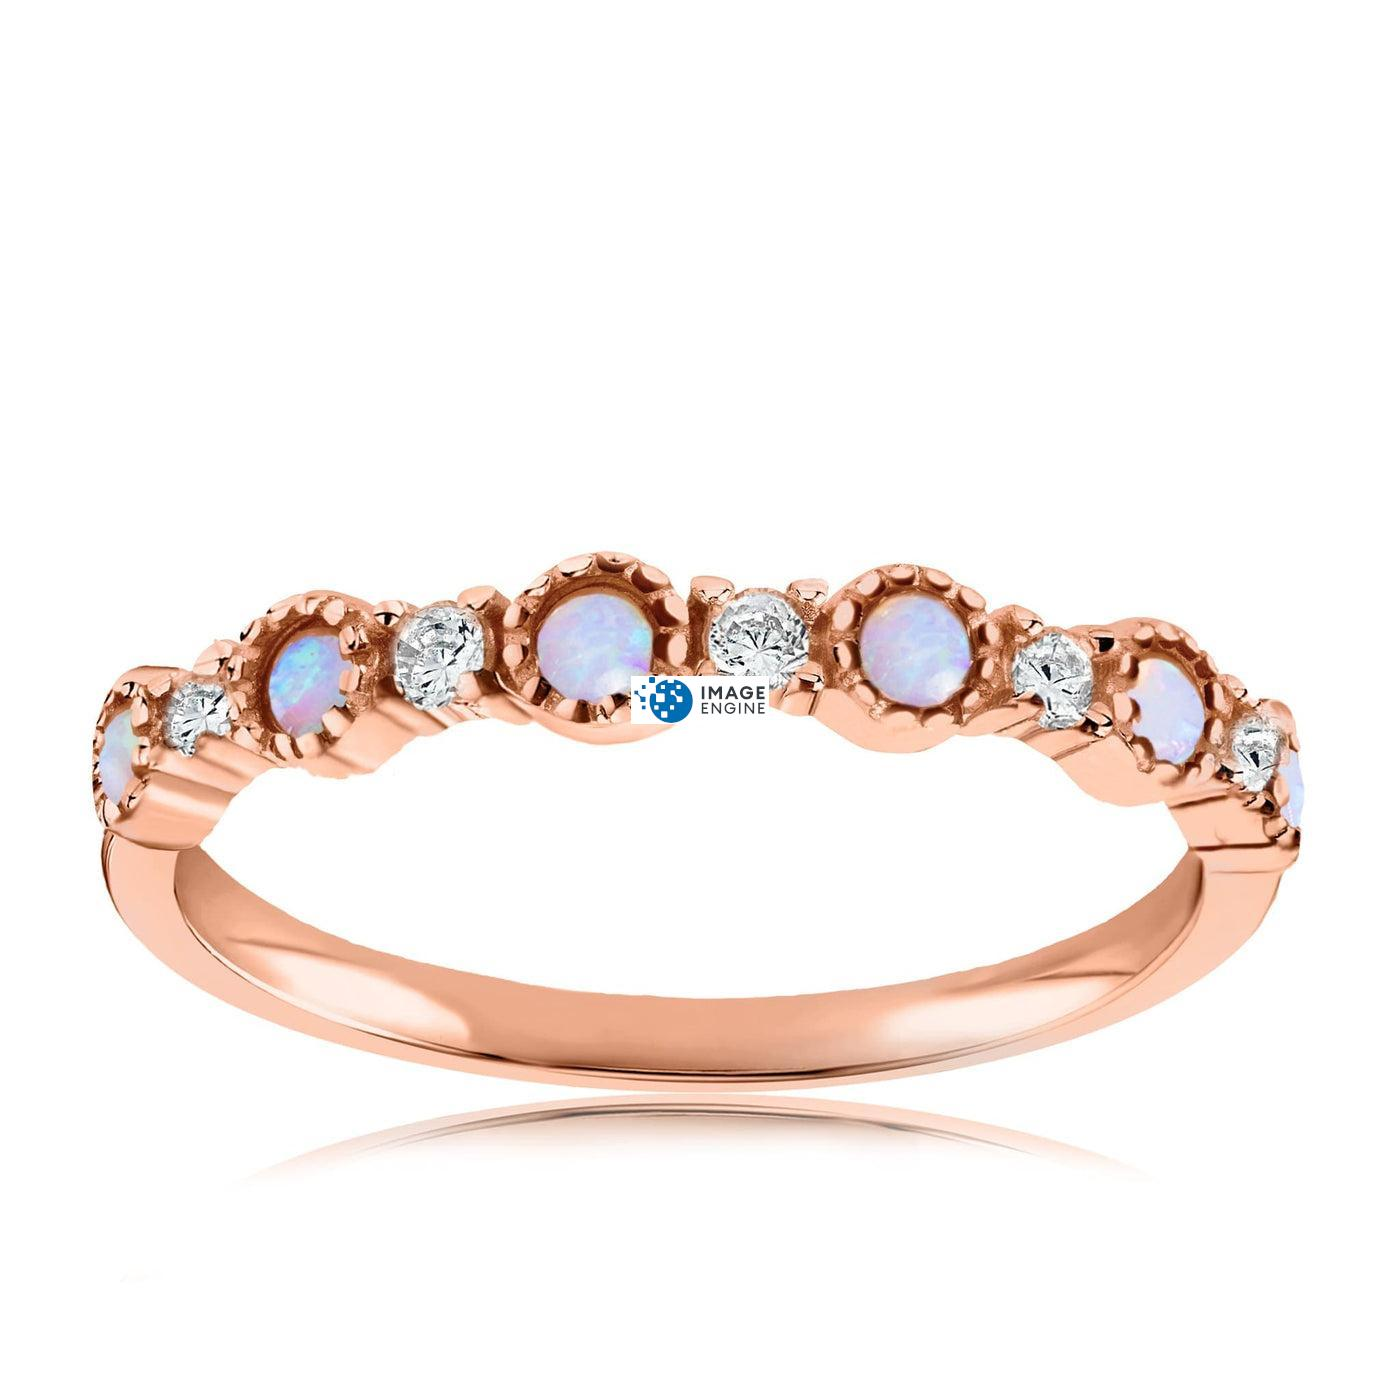 Debra Dots Opal Ring - Front View Facing Up - 18K Rose Gold Vermeil